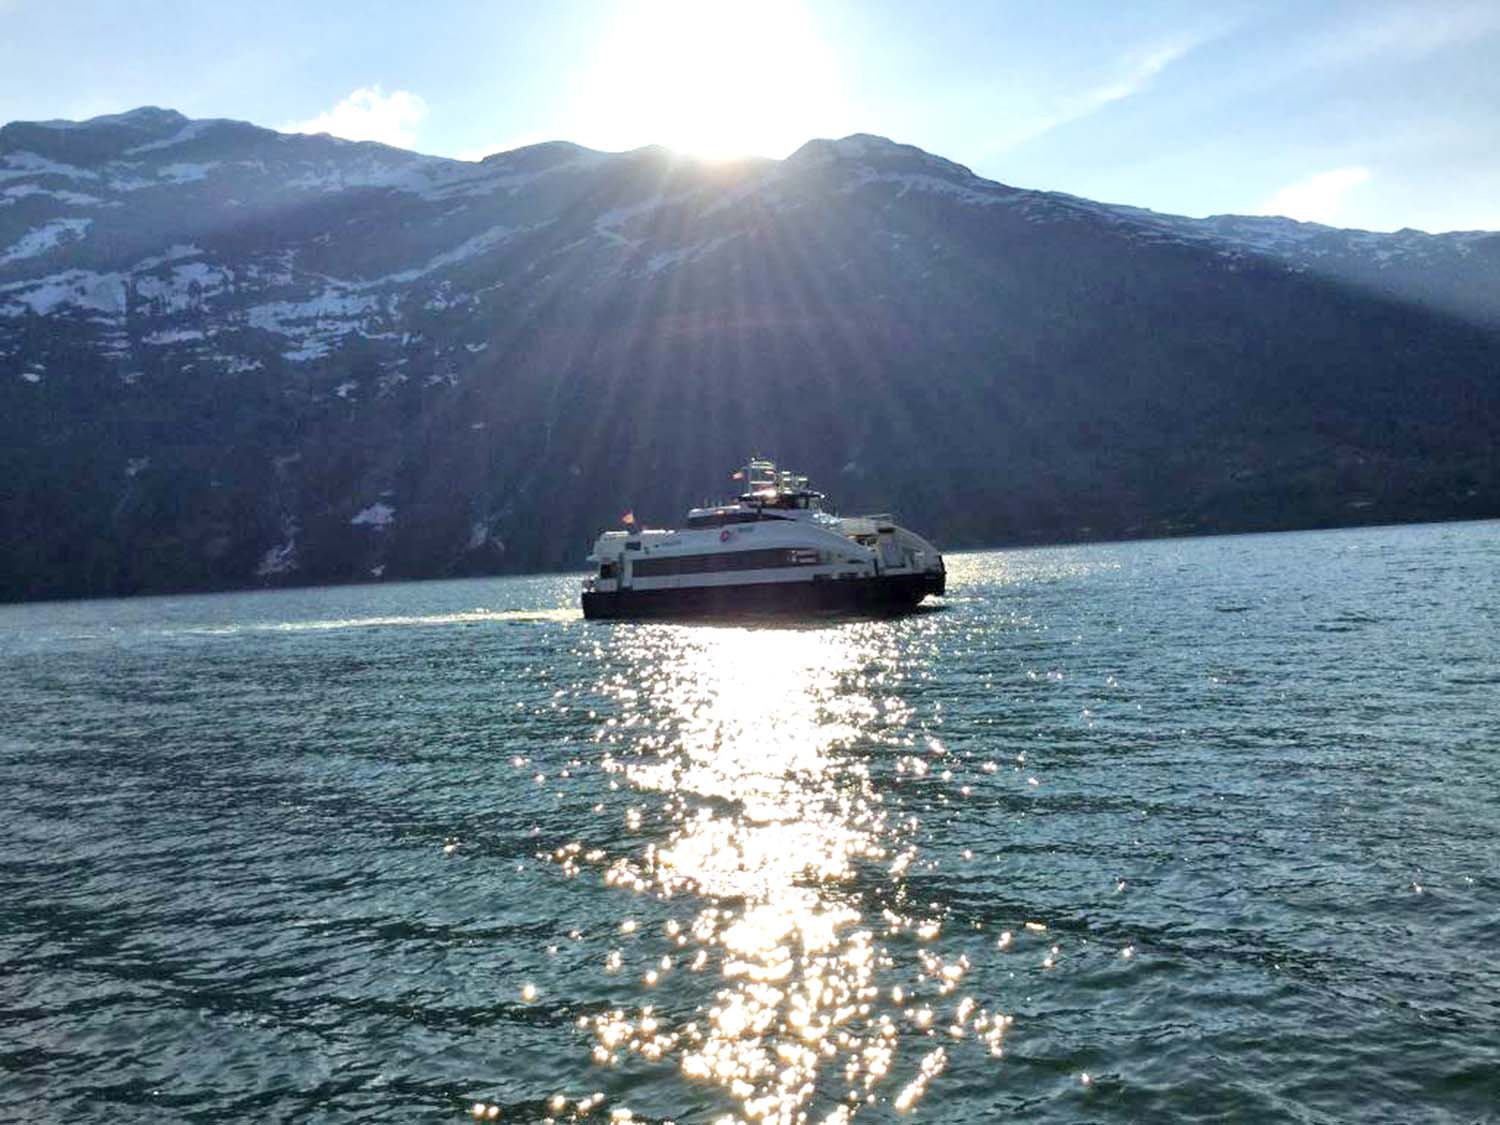 Visit the Fjords by Boat